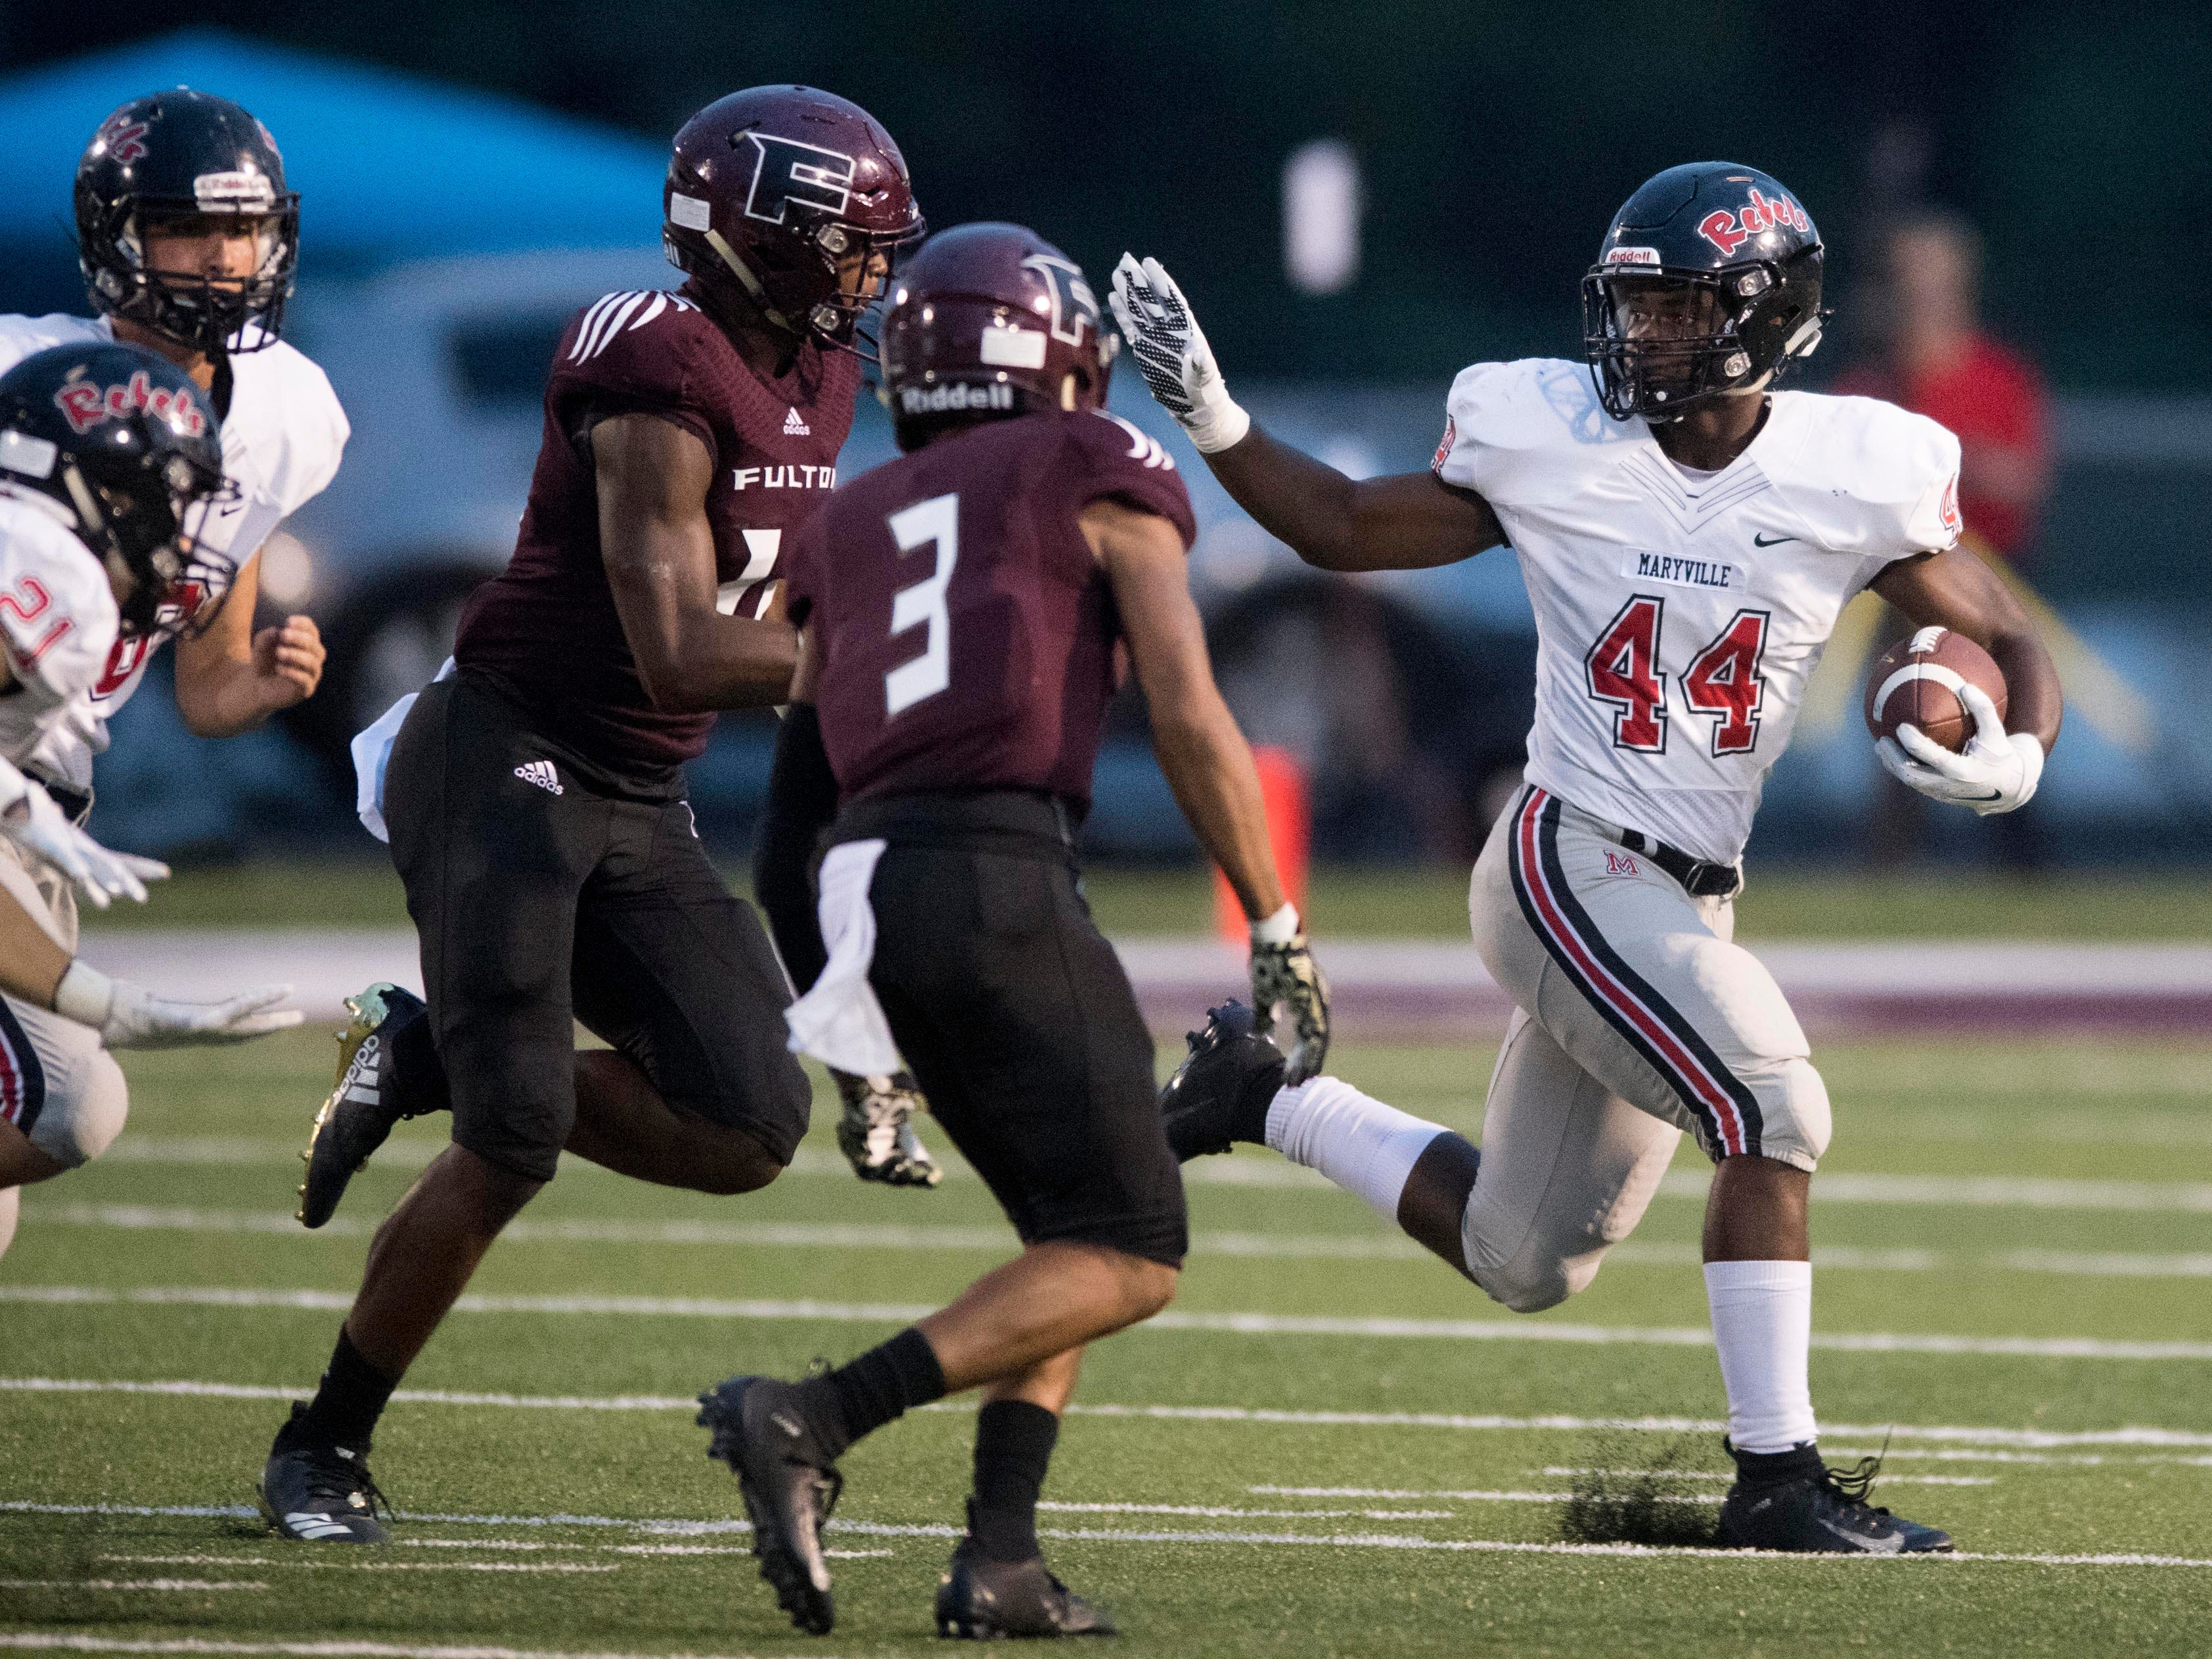 Maryville's Tee Hodge (44) tries to hold off Fulton's J'Coryan Anderson (12) and Shamond Morelan (3) during the football football game at Fulton on Friday, September 21, 2018.